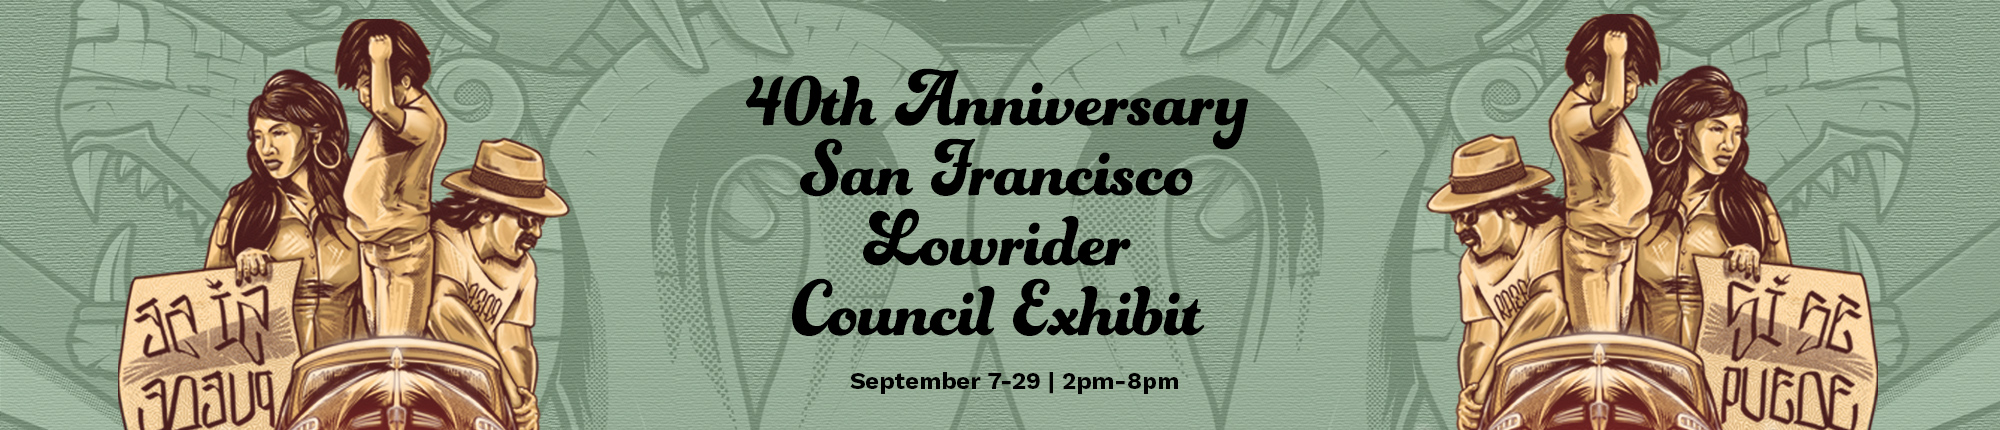 40th Anniversary San Francisco Lowrider Council Exhibit September 7 to 29 2pm to 8pm